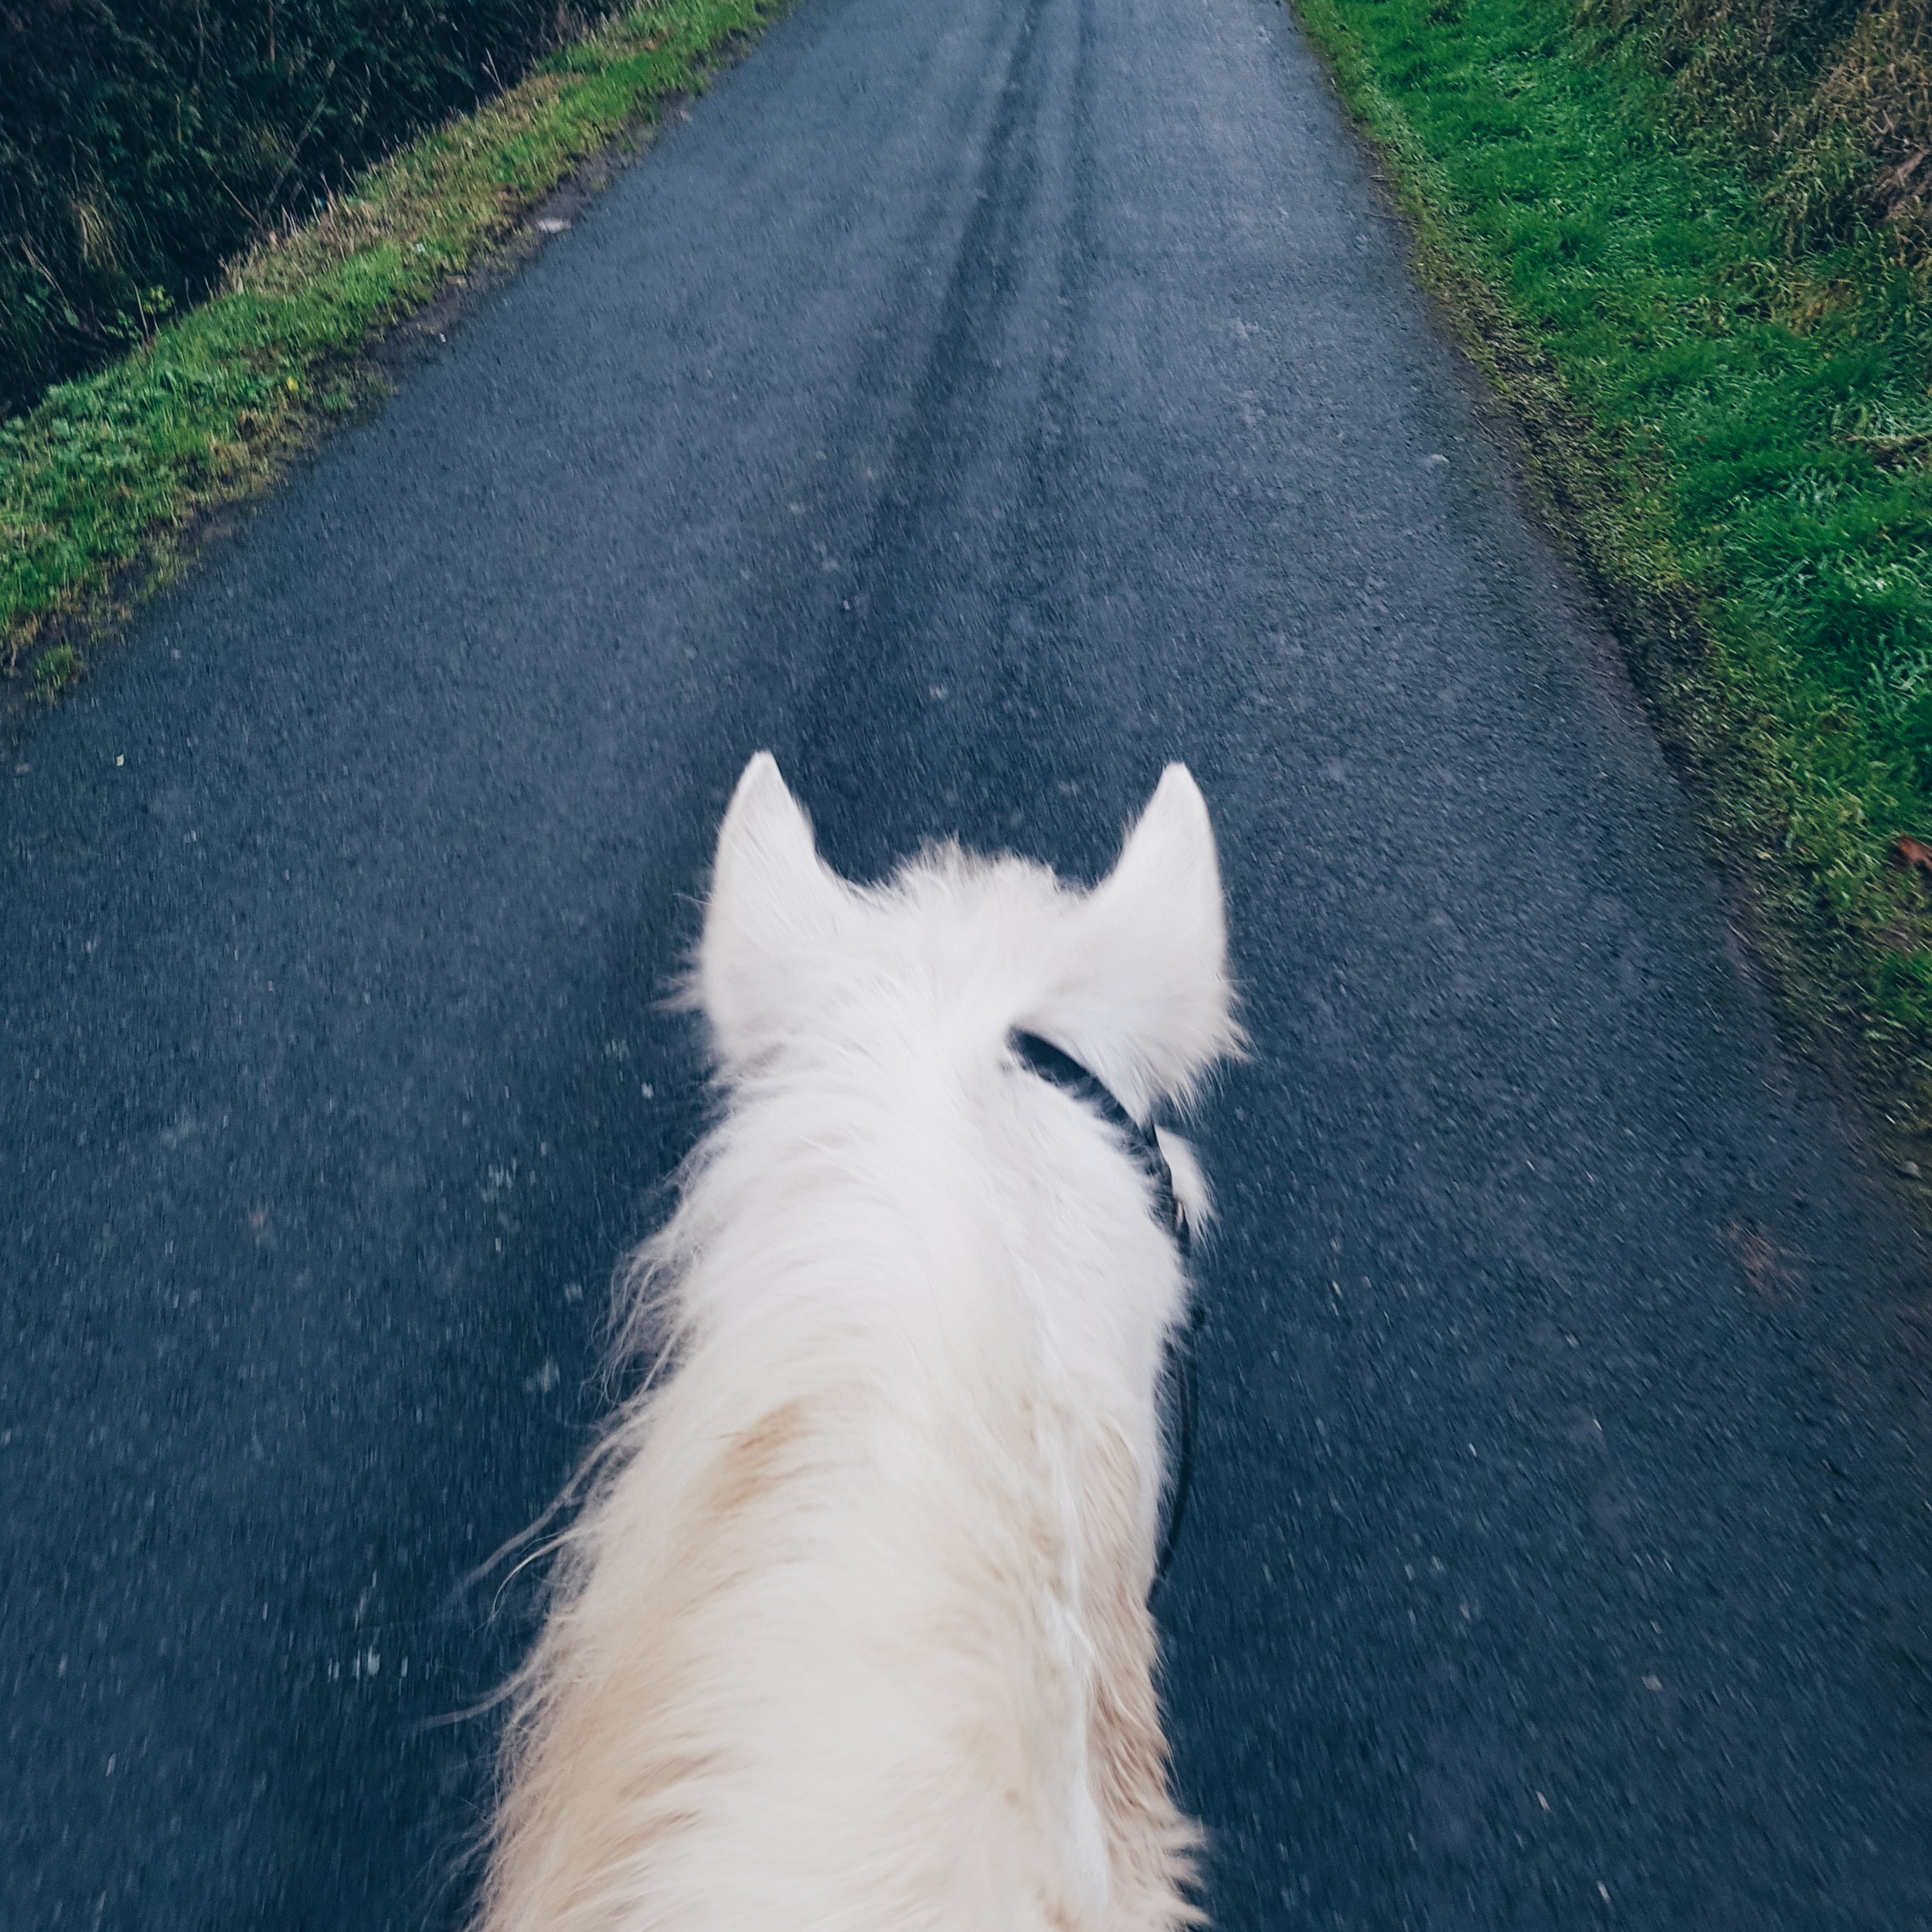 White horse on a road.